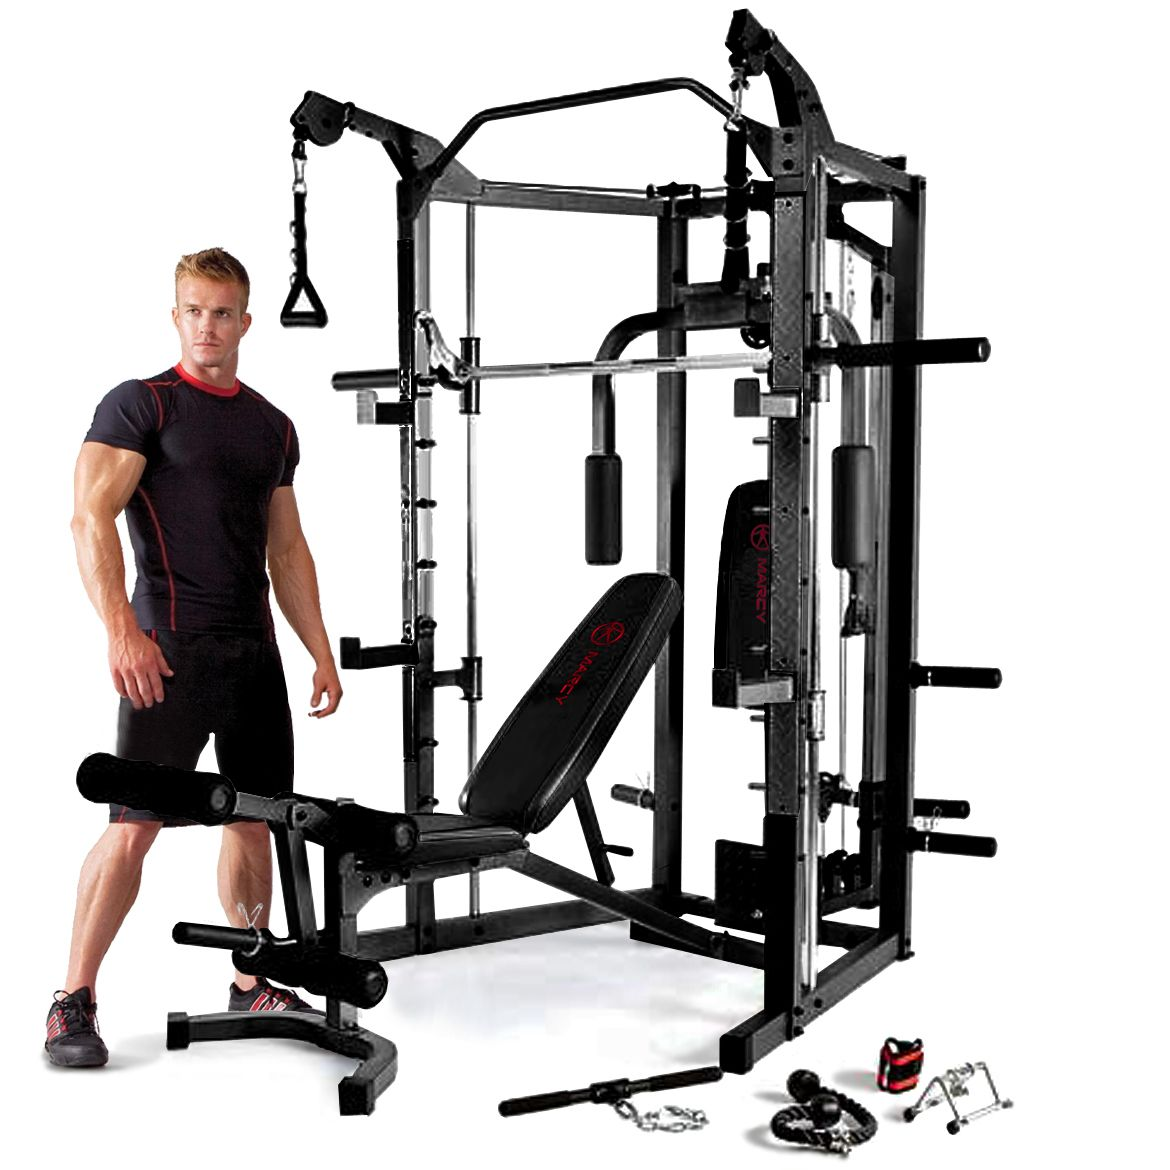 Marcy Eclipse RS7000 Deluxe Smith Machine Home Gym with